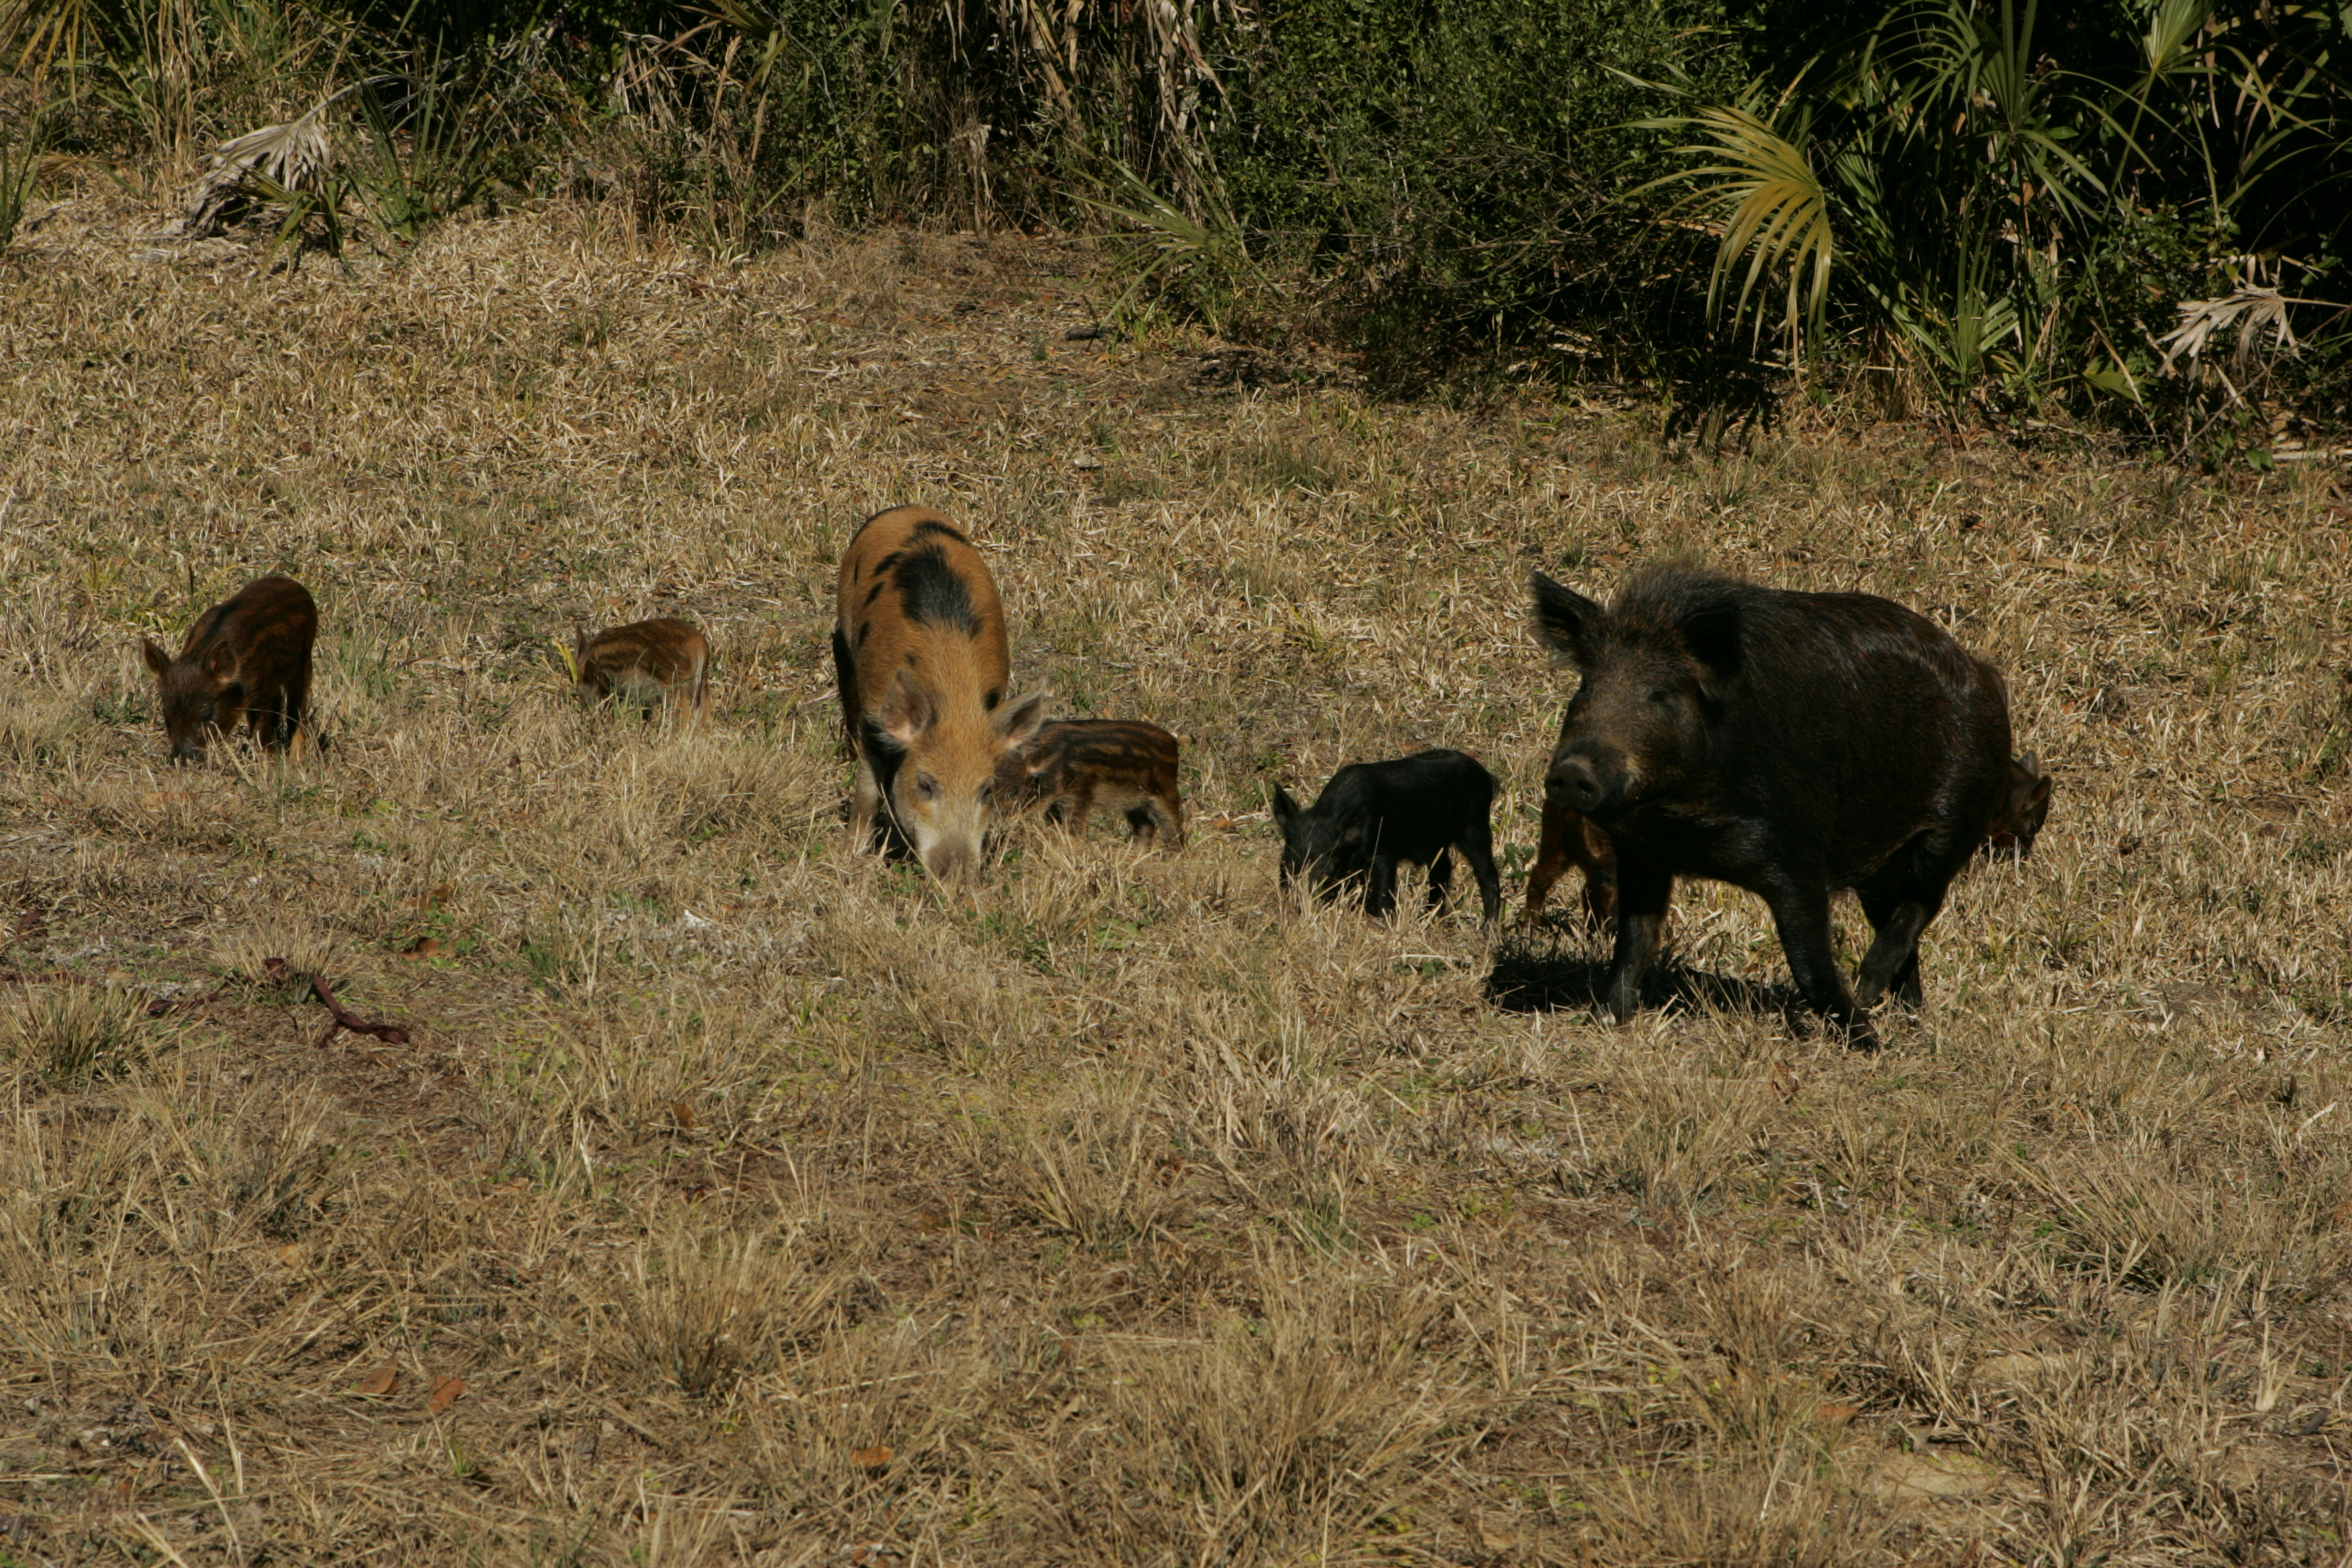 Night Vision Approved to Combat Feral Hogs